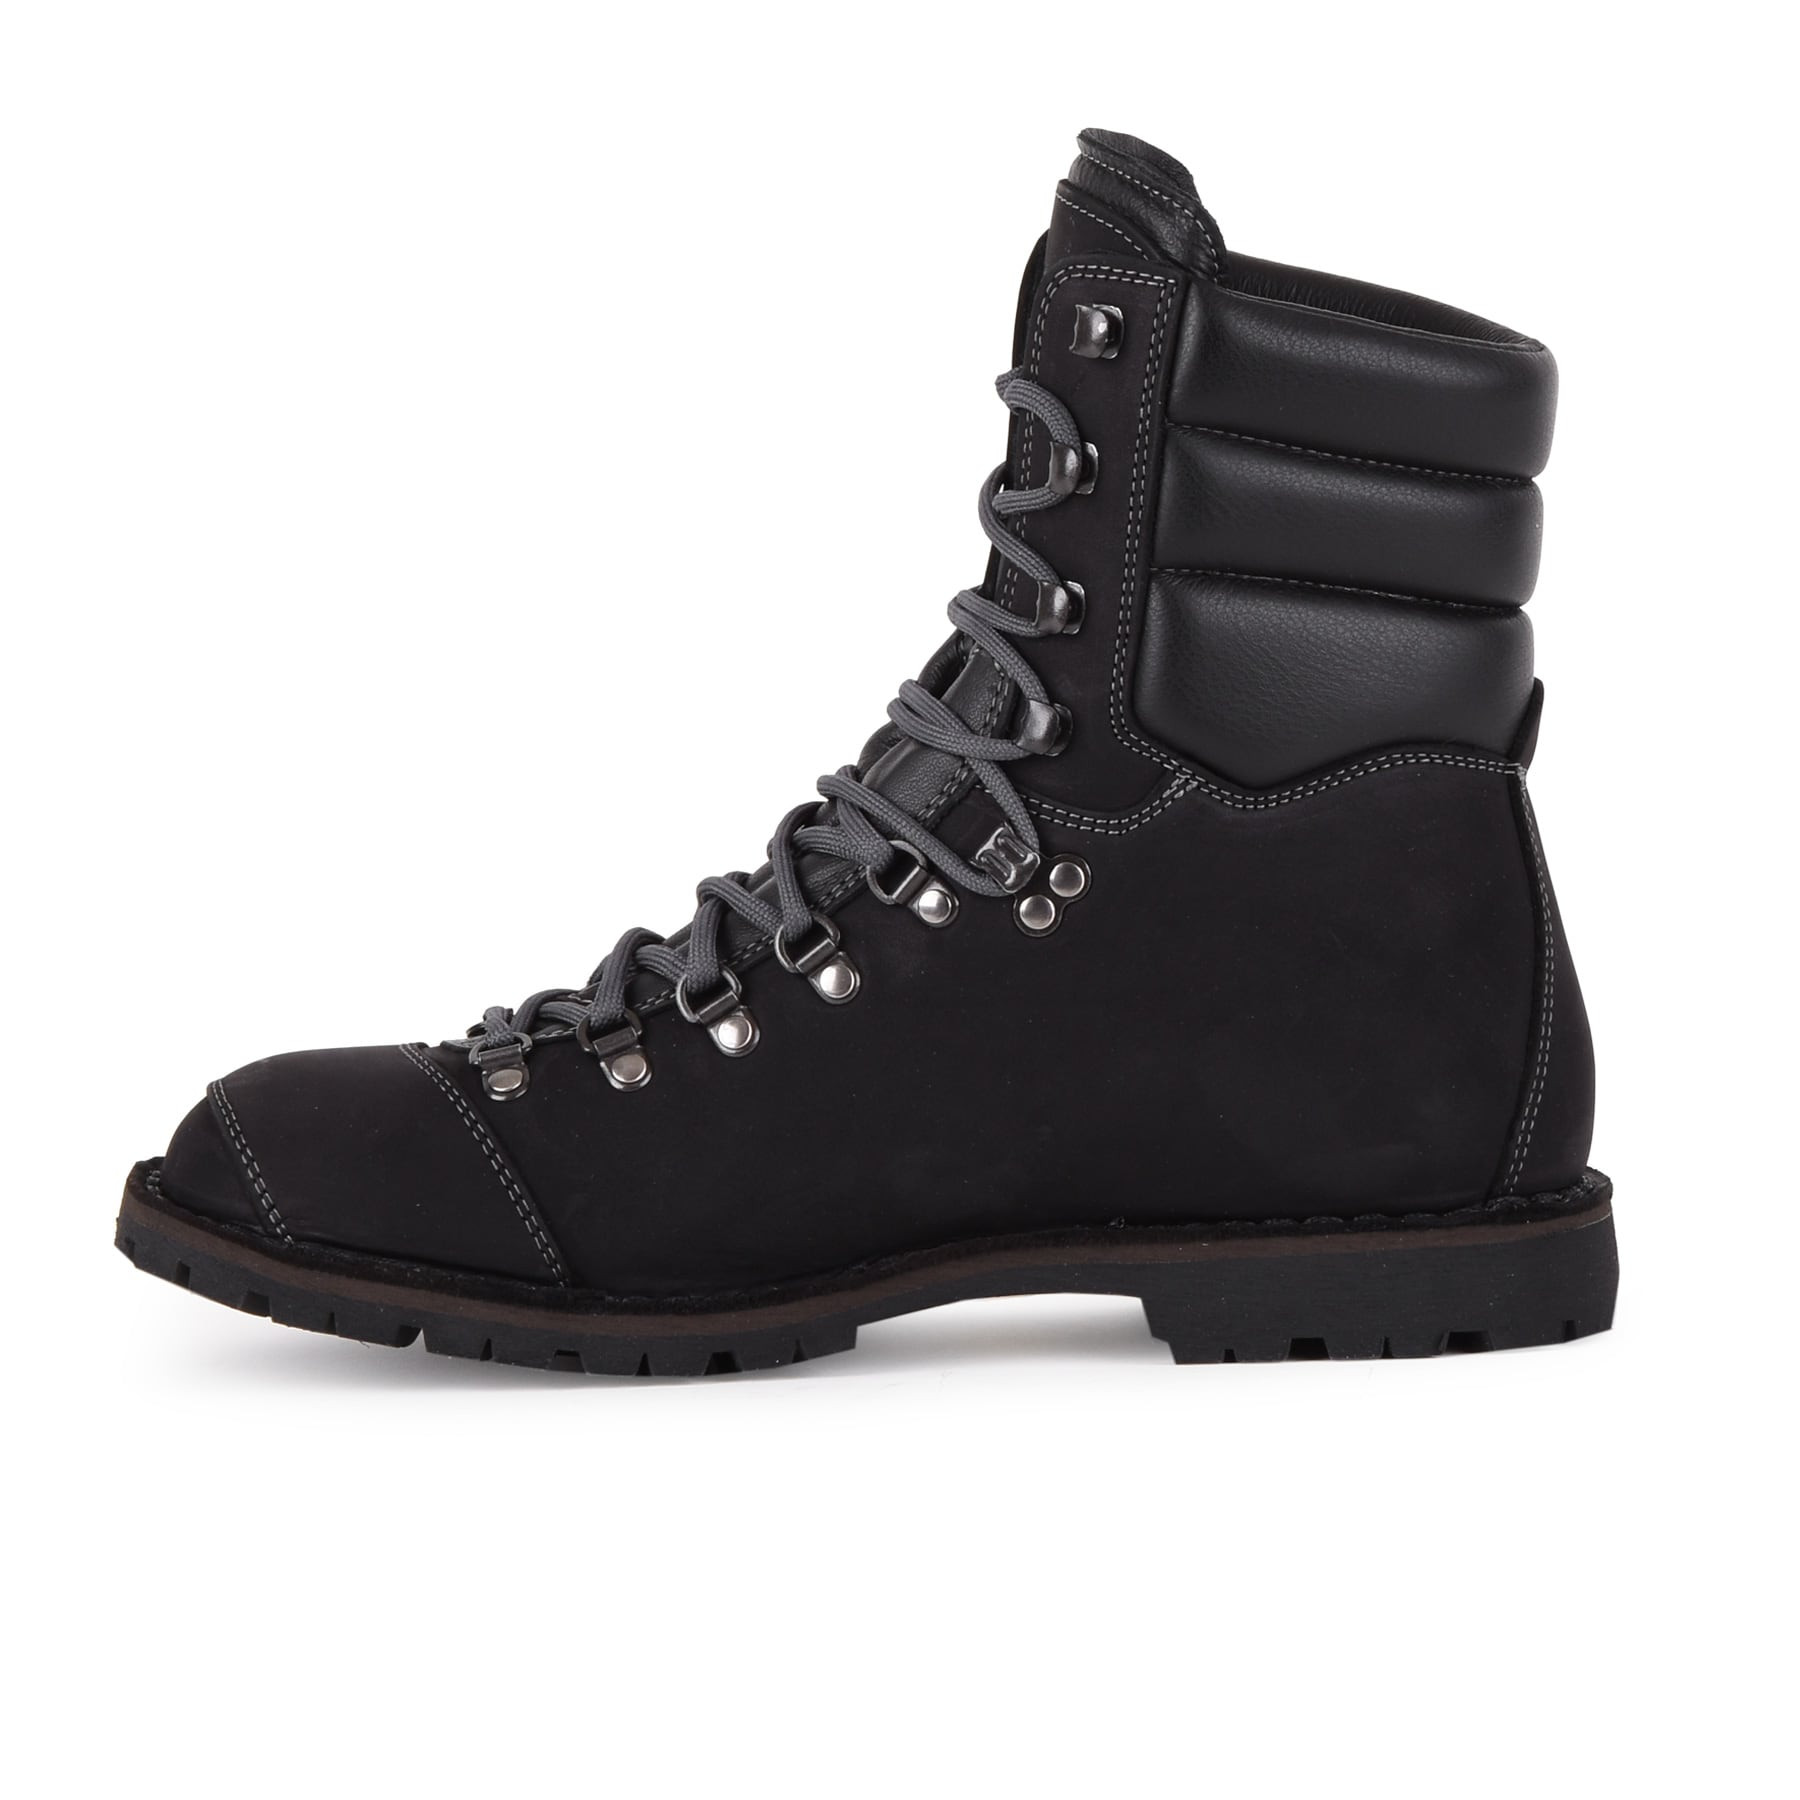 Biker Boot AdventureSE Denver Black, schwarzer Damen Stiefel, graue Nähte